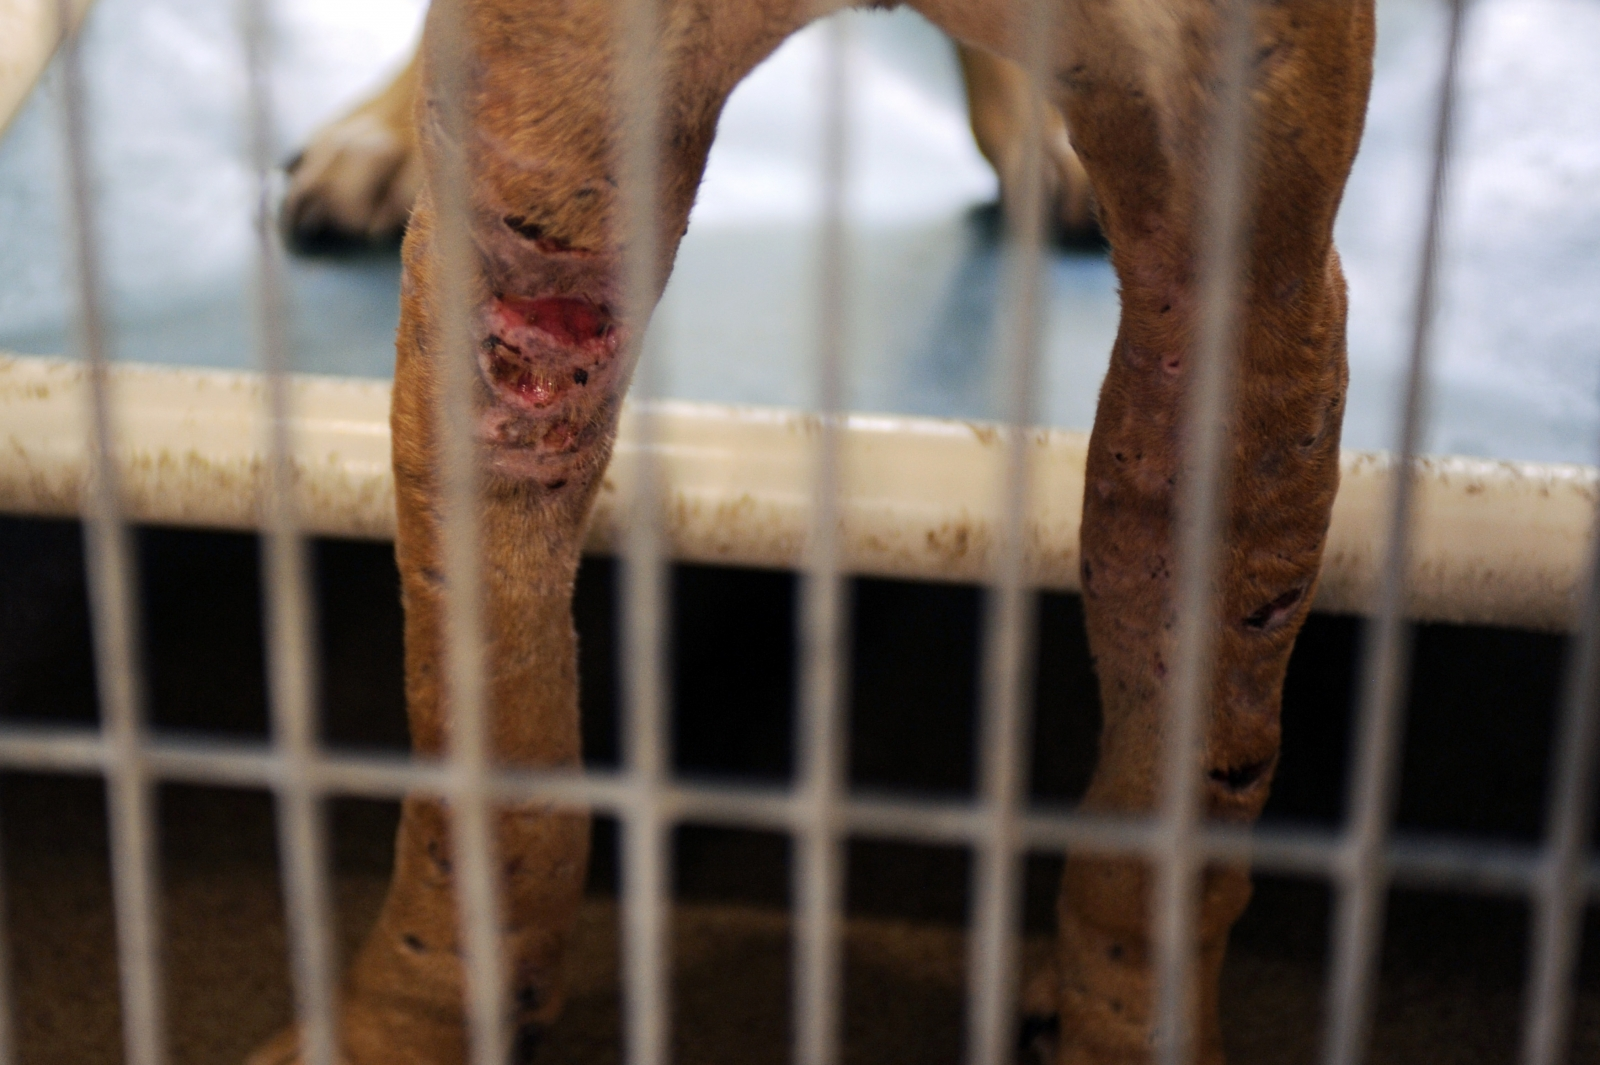 Dog seized by authorities from a dog fighting ring in Florida. (reuters)